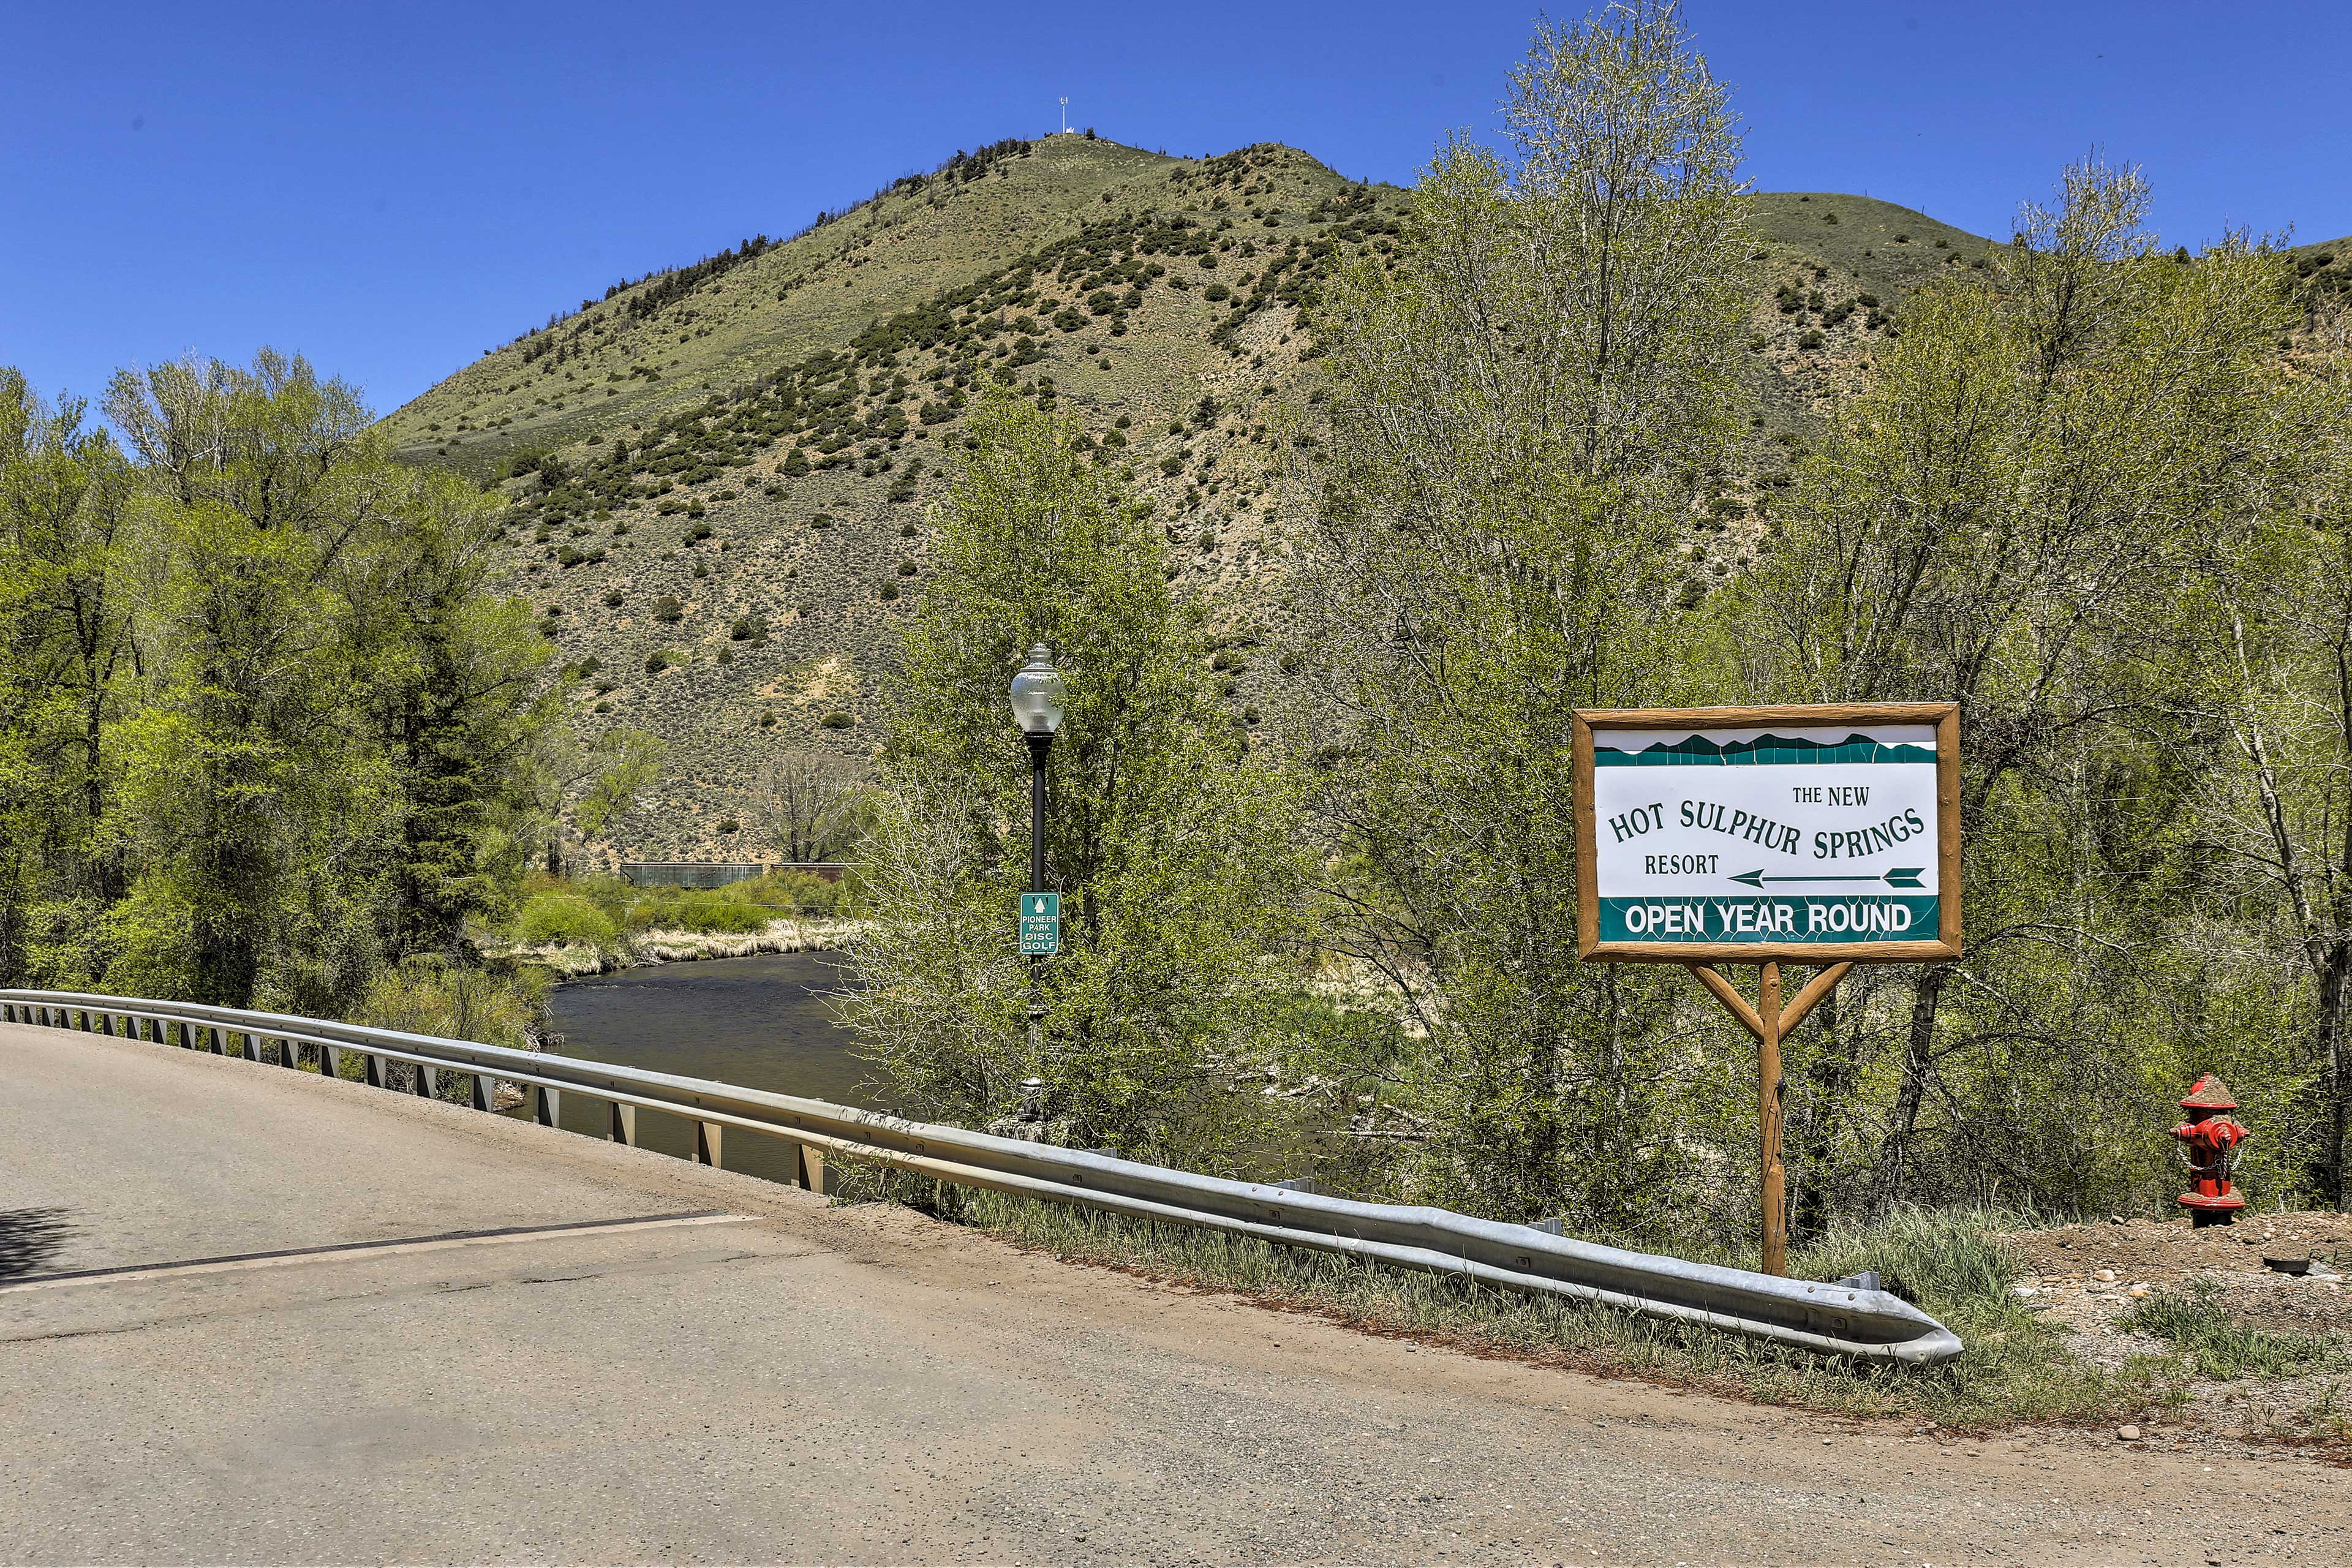 A 10-minute stroll will bring you to the natural hot springs.